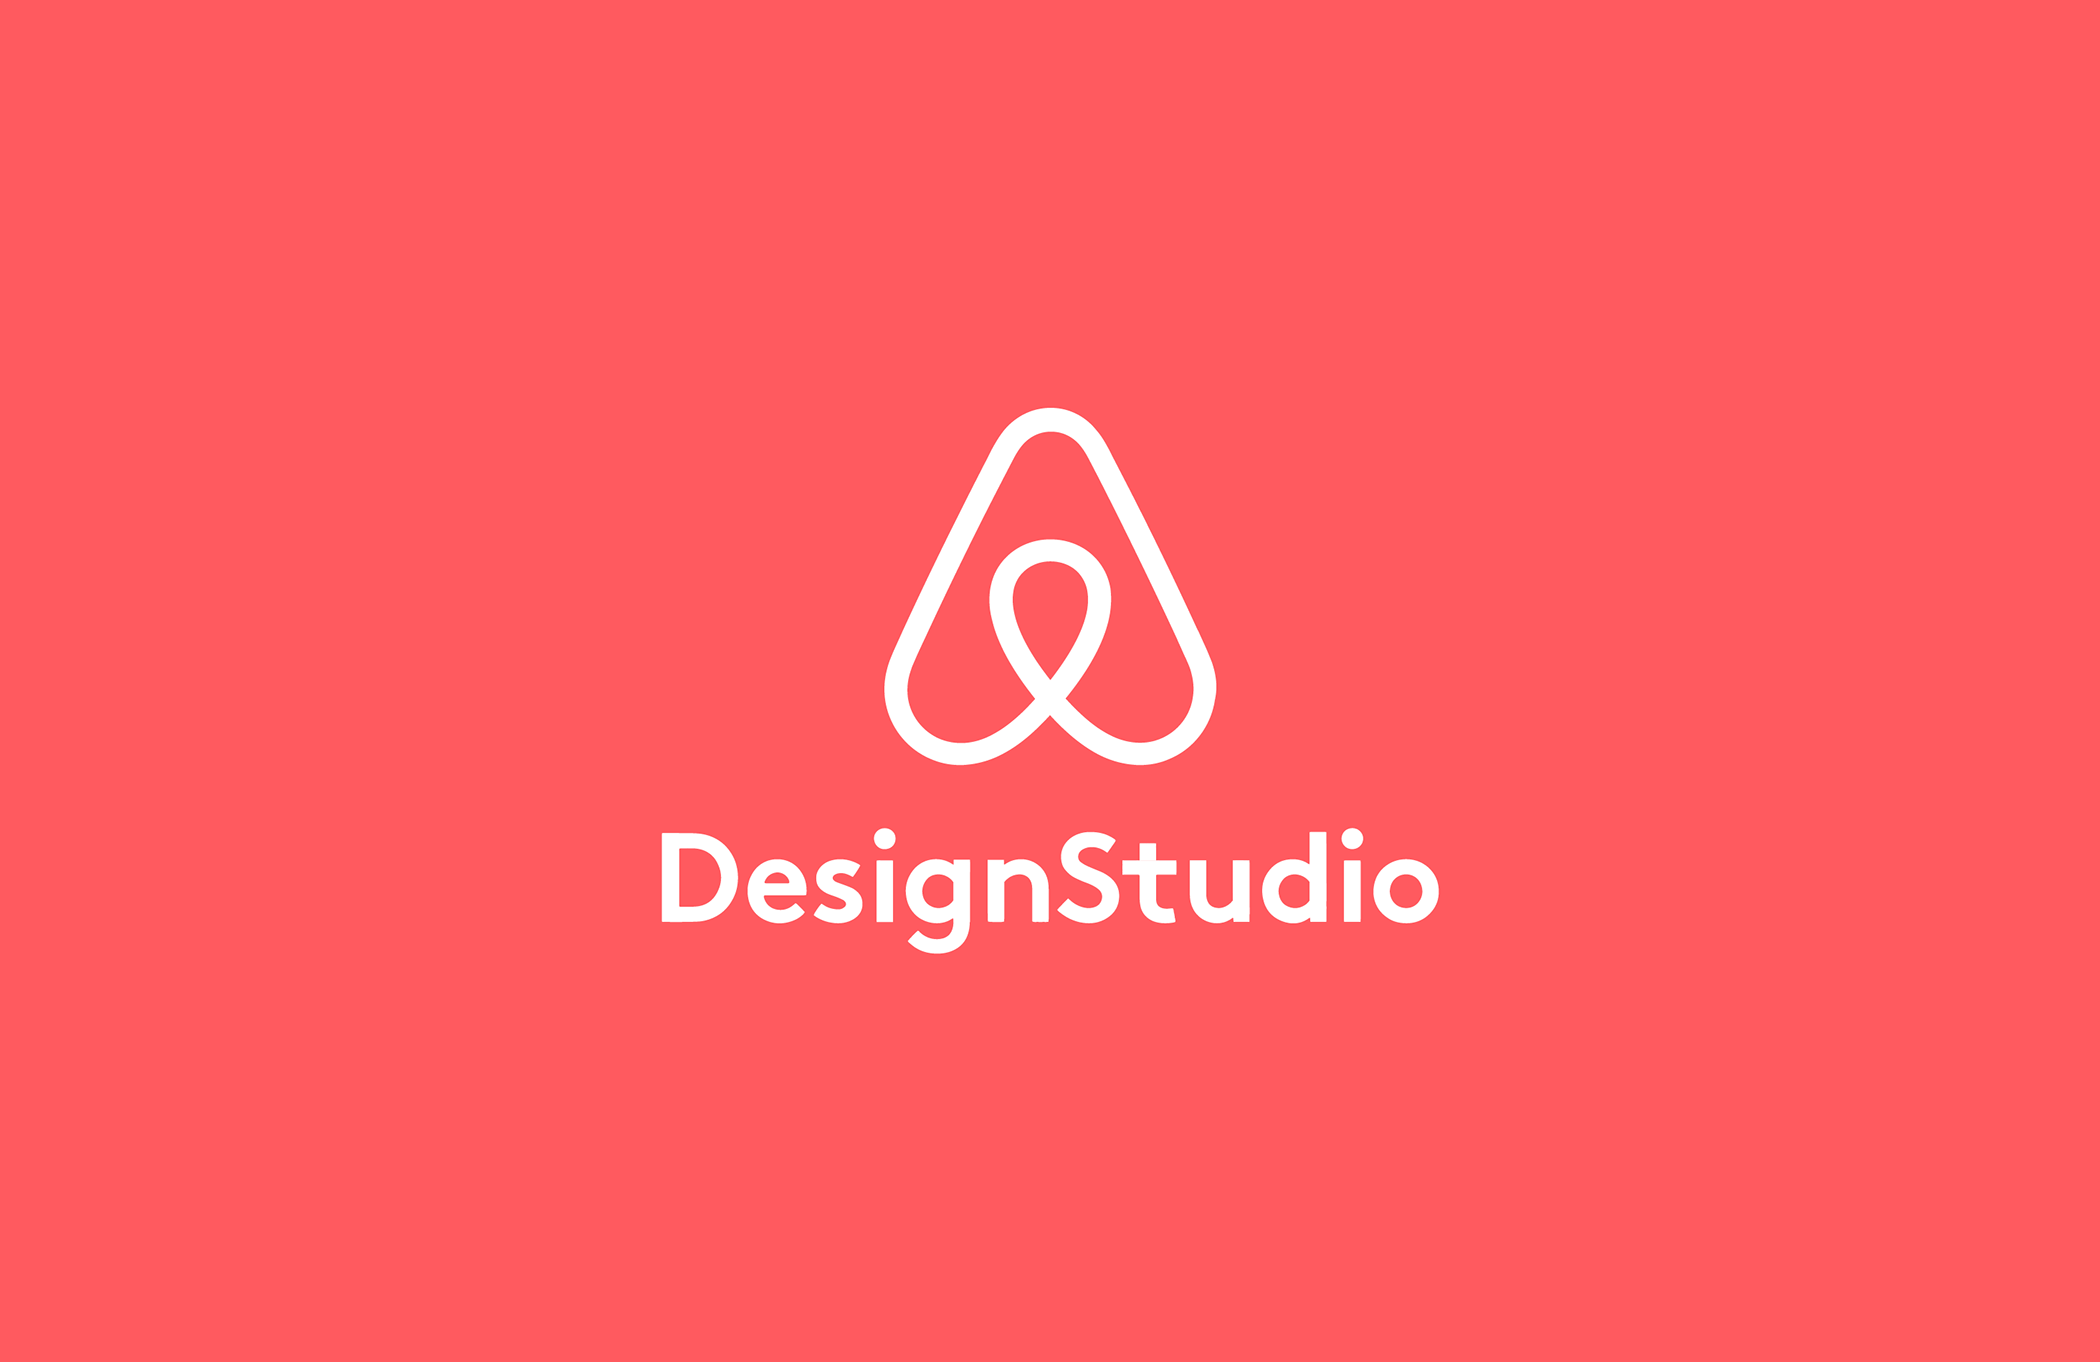 DesignStudio - Agency behind the Airbnb logo